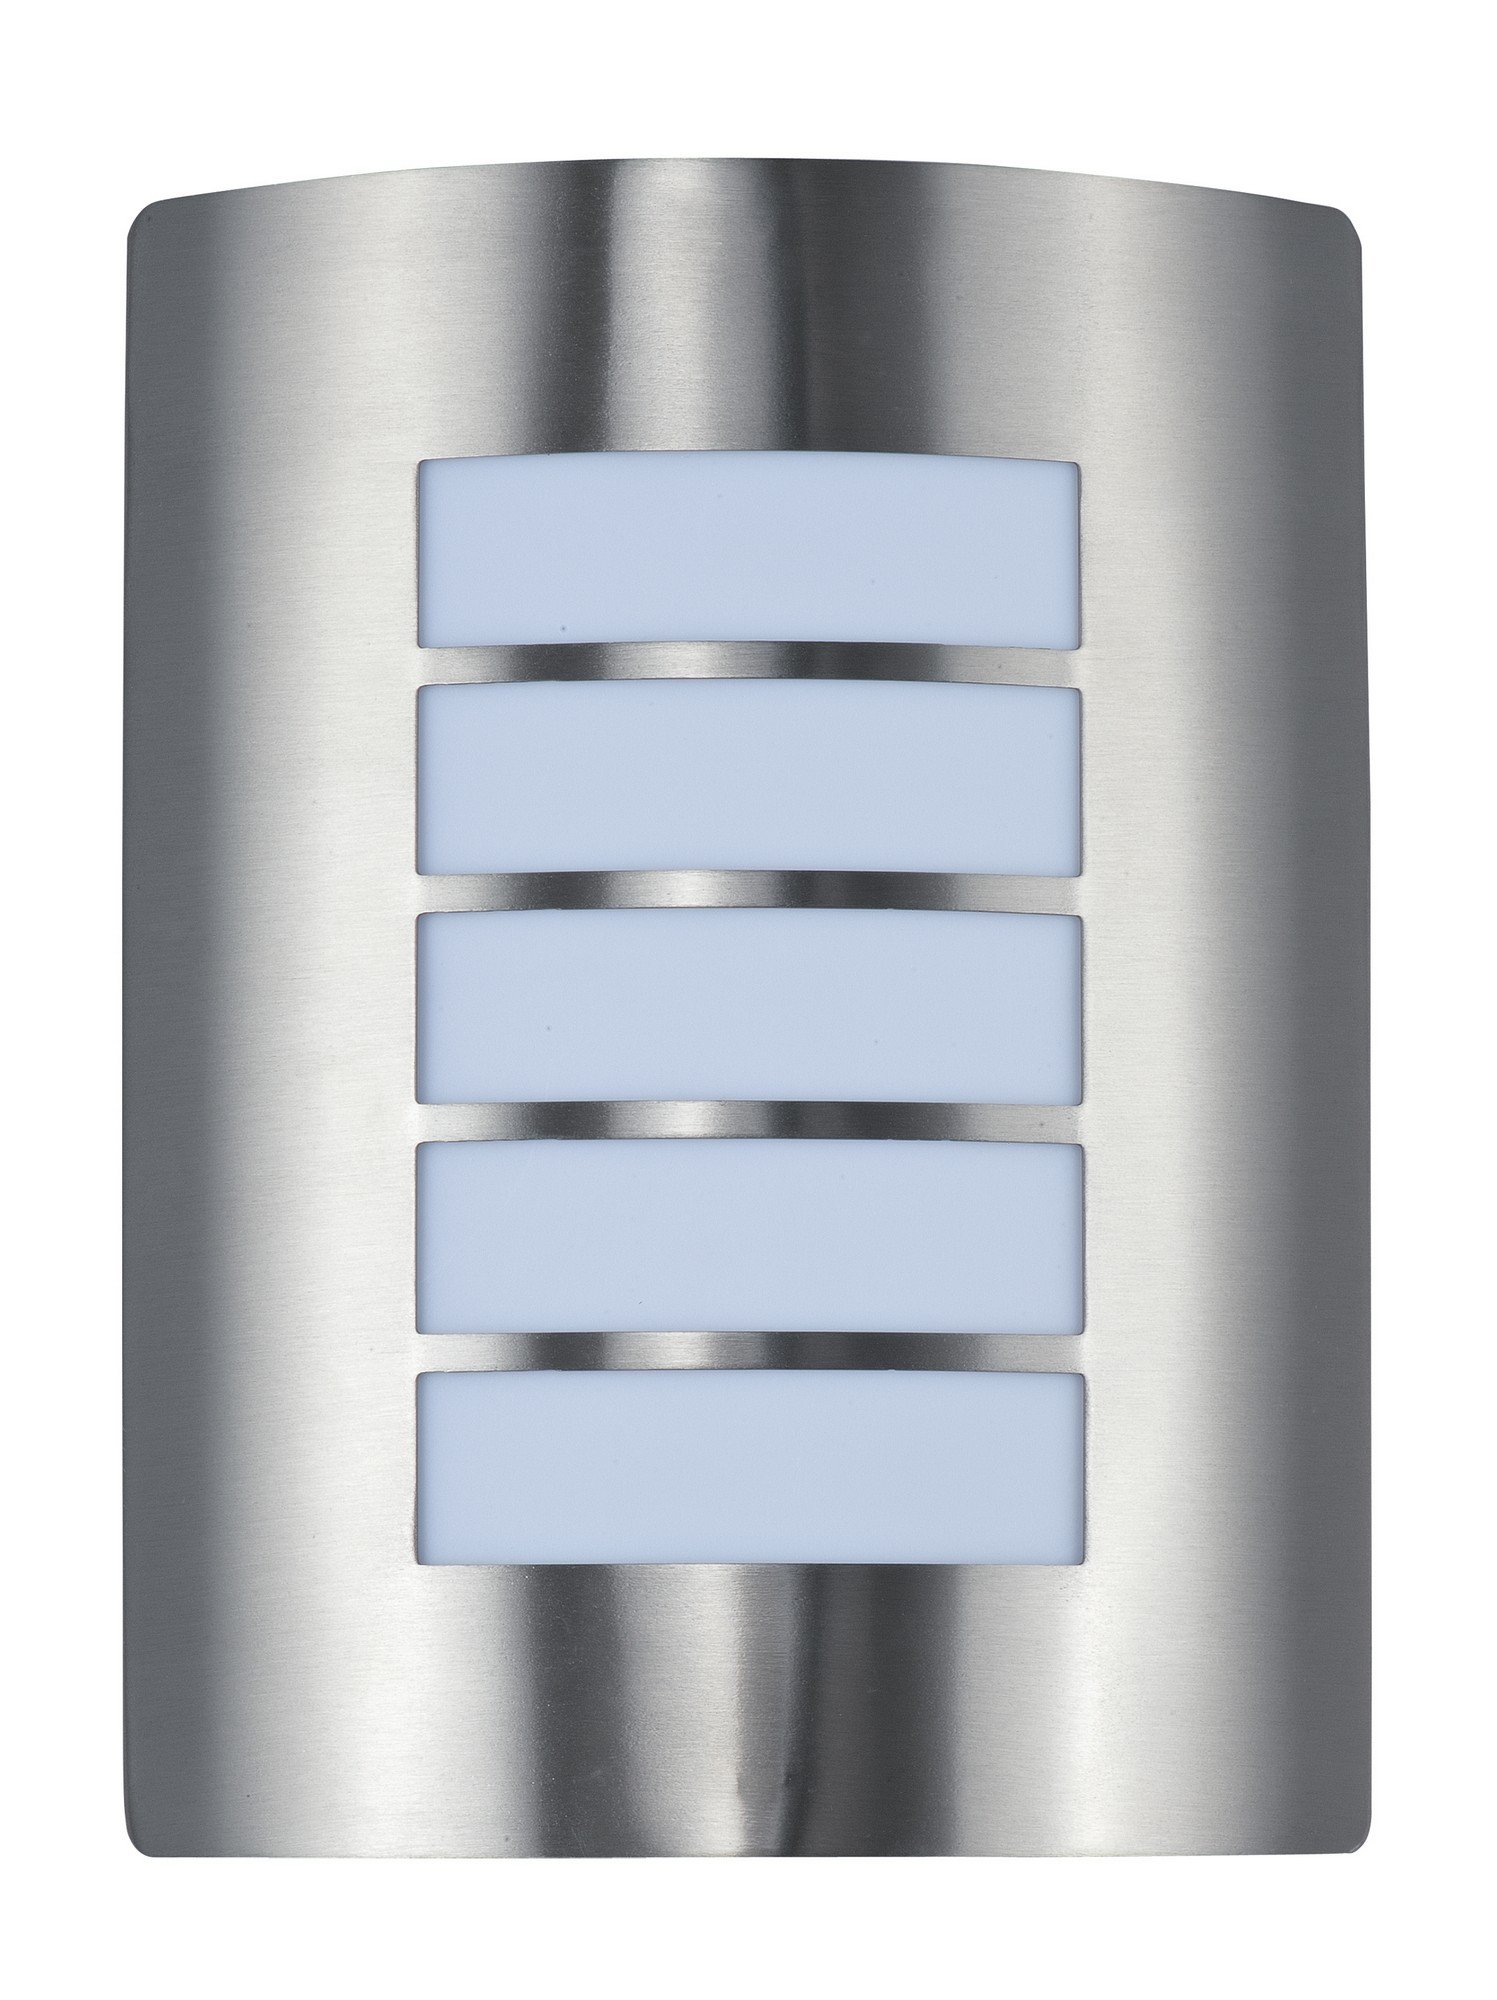 Maxim 54321WTSST View EE 1-Light Wall Sconce, Stainless Steel Finish, White Glass, GU24 Fluorescent Fluorescent Bulb , 40W Max., Damp Safety Rating, 2900K Color Temp, Standard Dimmable, Glass Shade Material, 1500 Rated Lumens